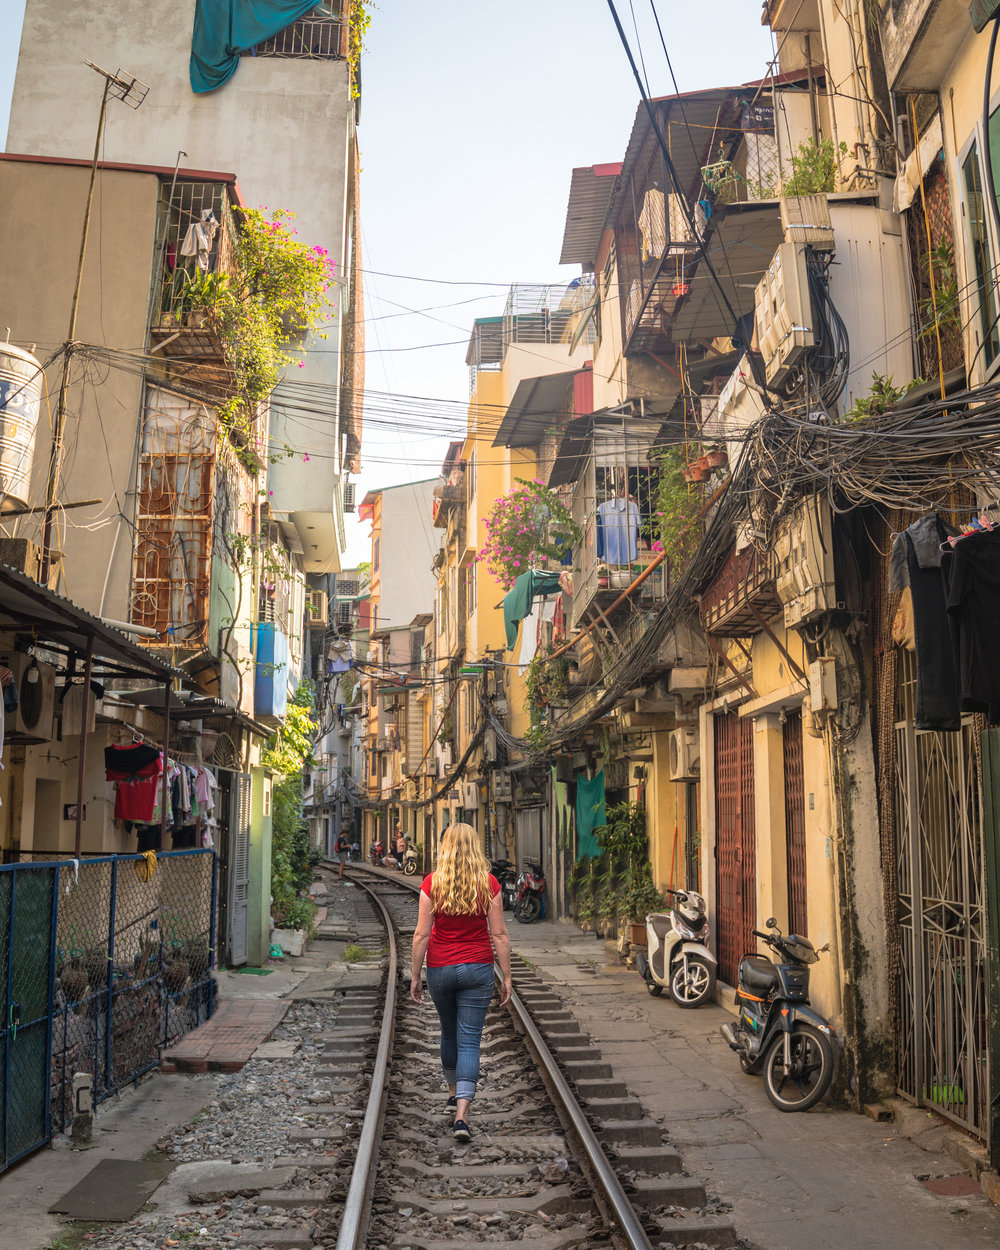 Instagrammable Places in Vietnam - Railway Street